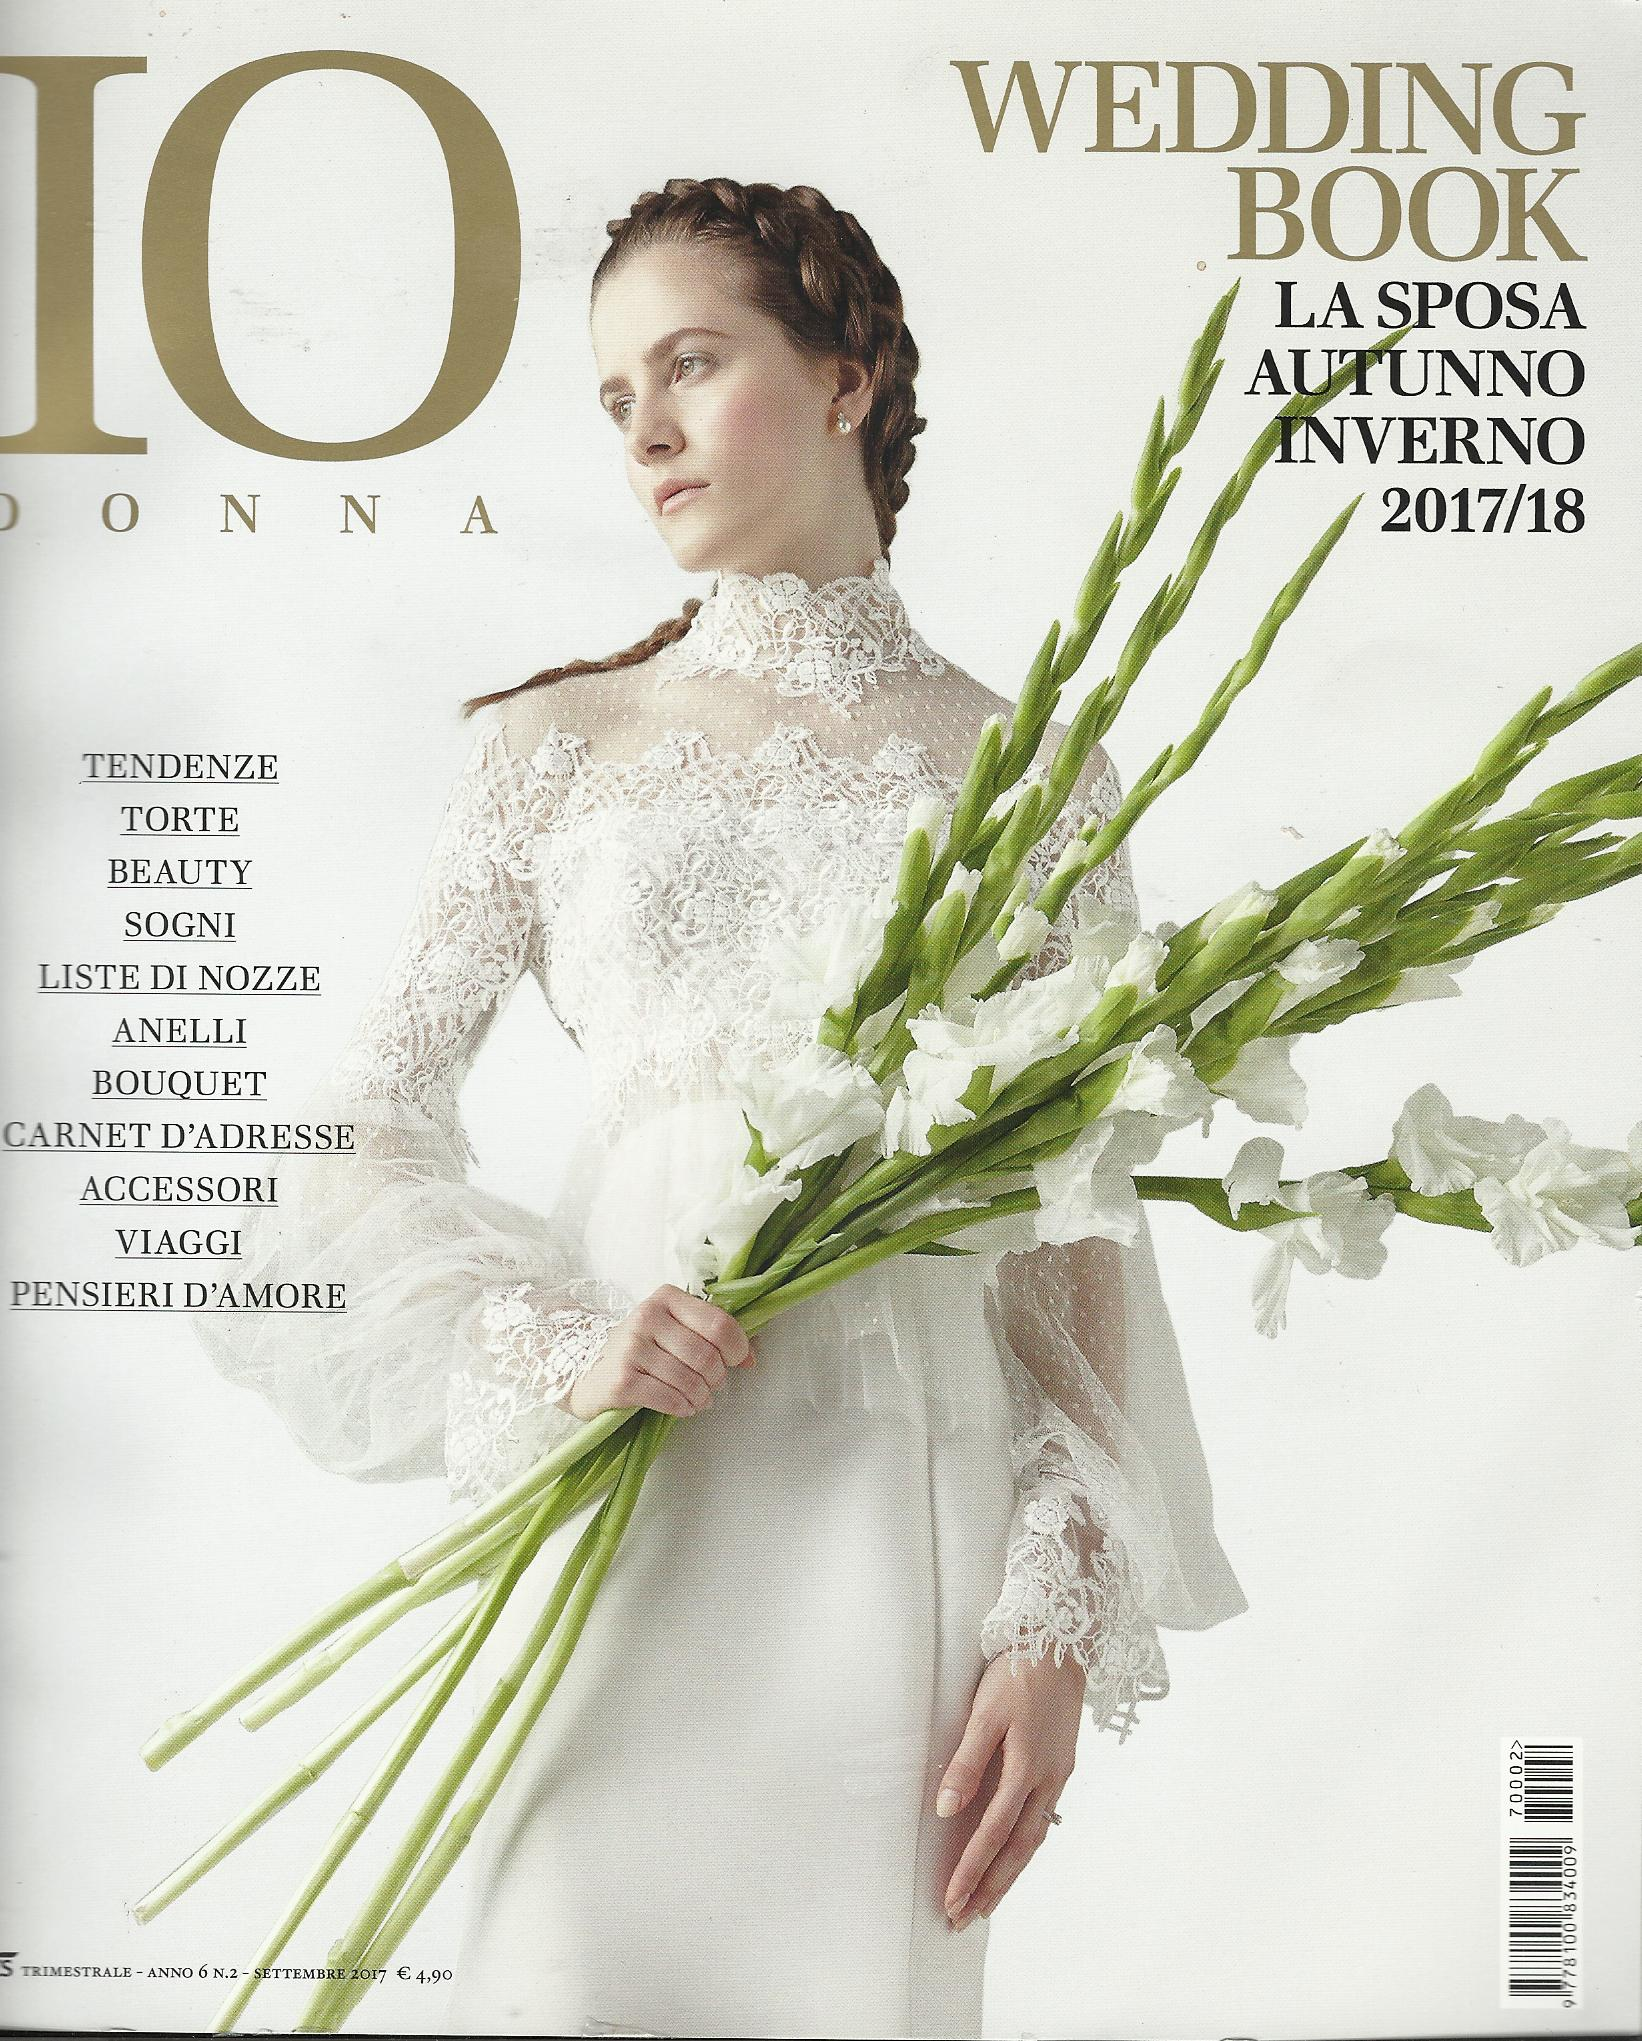 Io donna Wedding Book 2017/2018